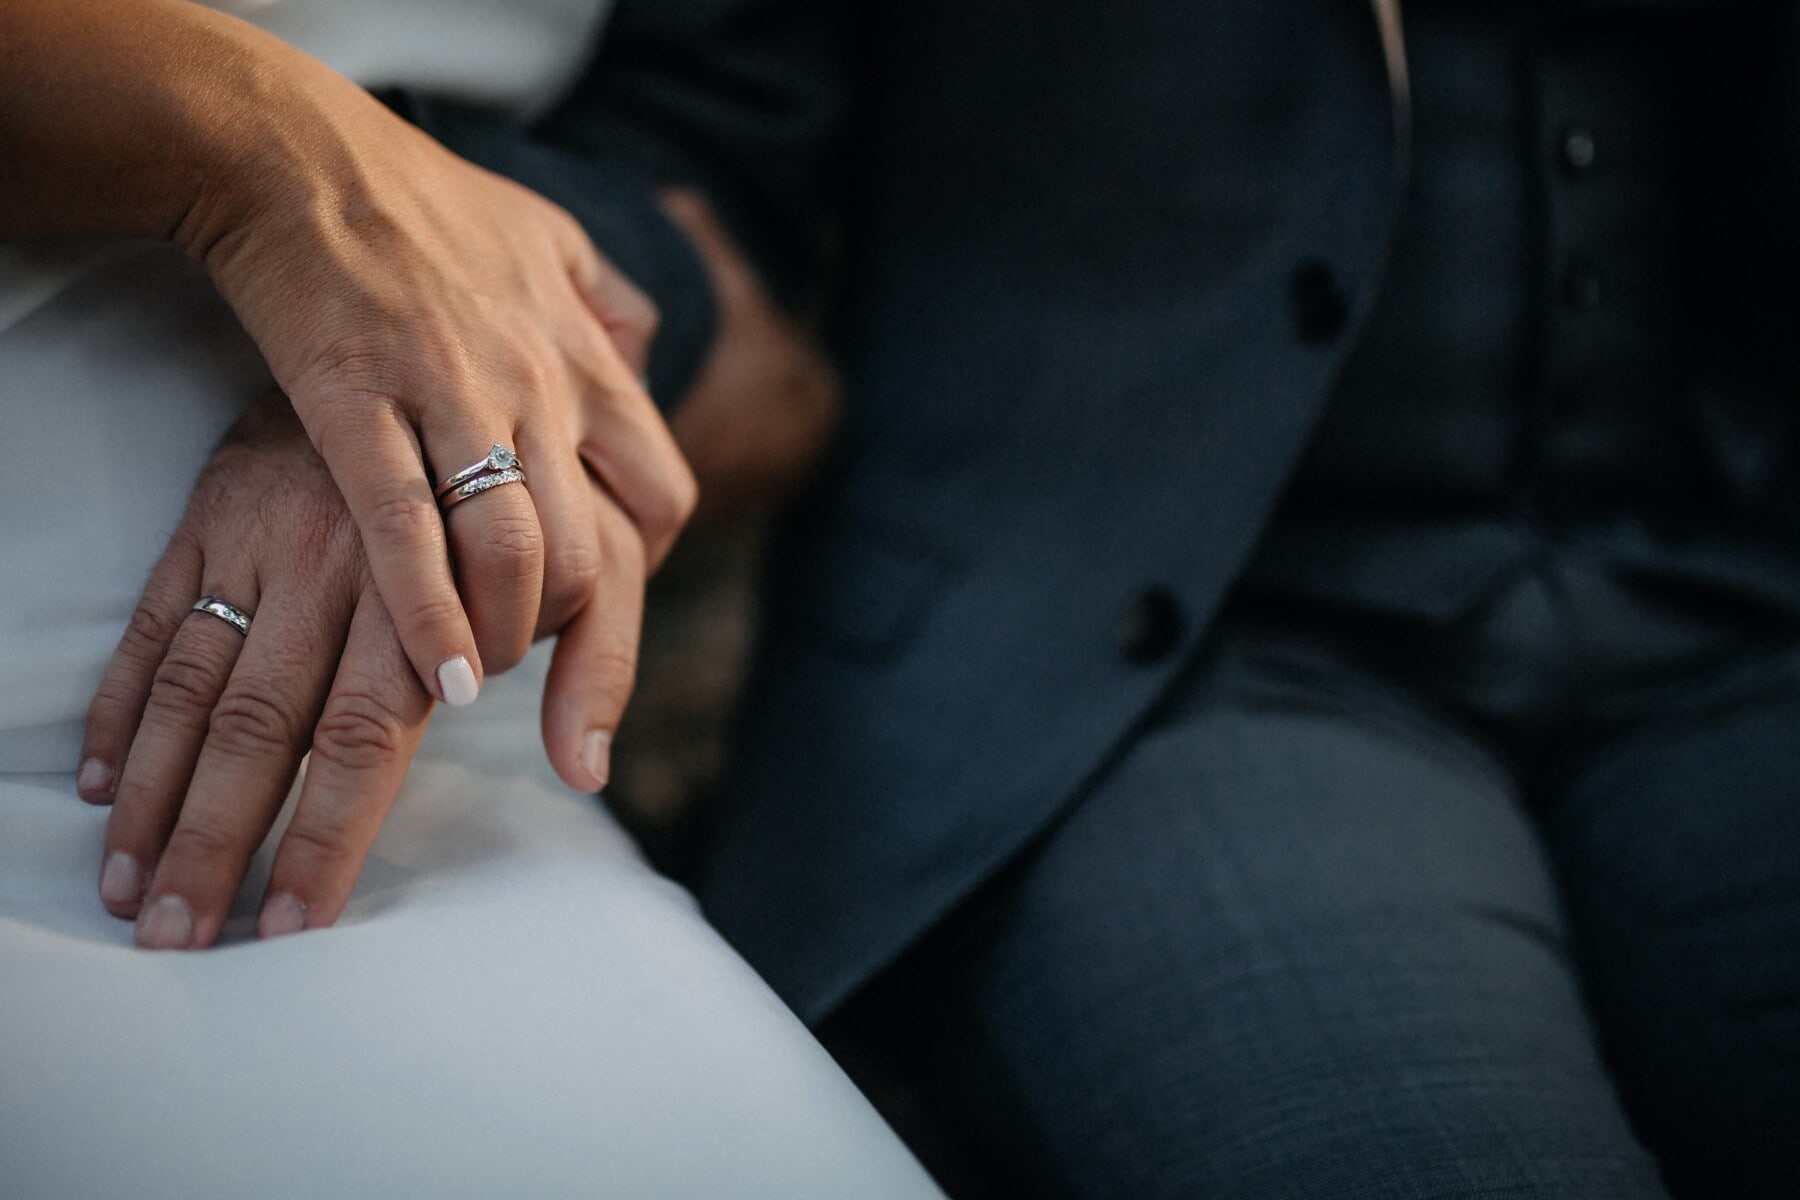 fancy, wedding ring, holding hands, hands, hand, woman, people, girl, man, wedding